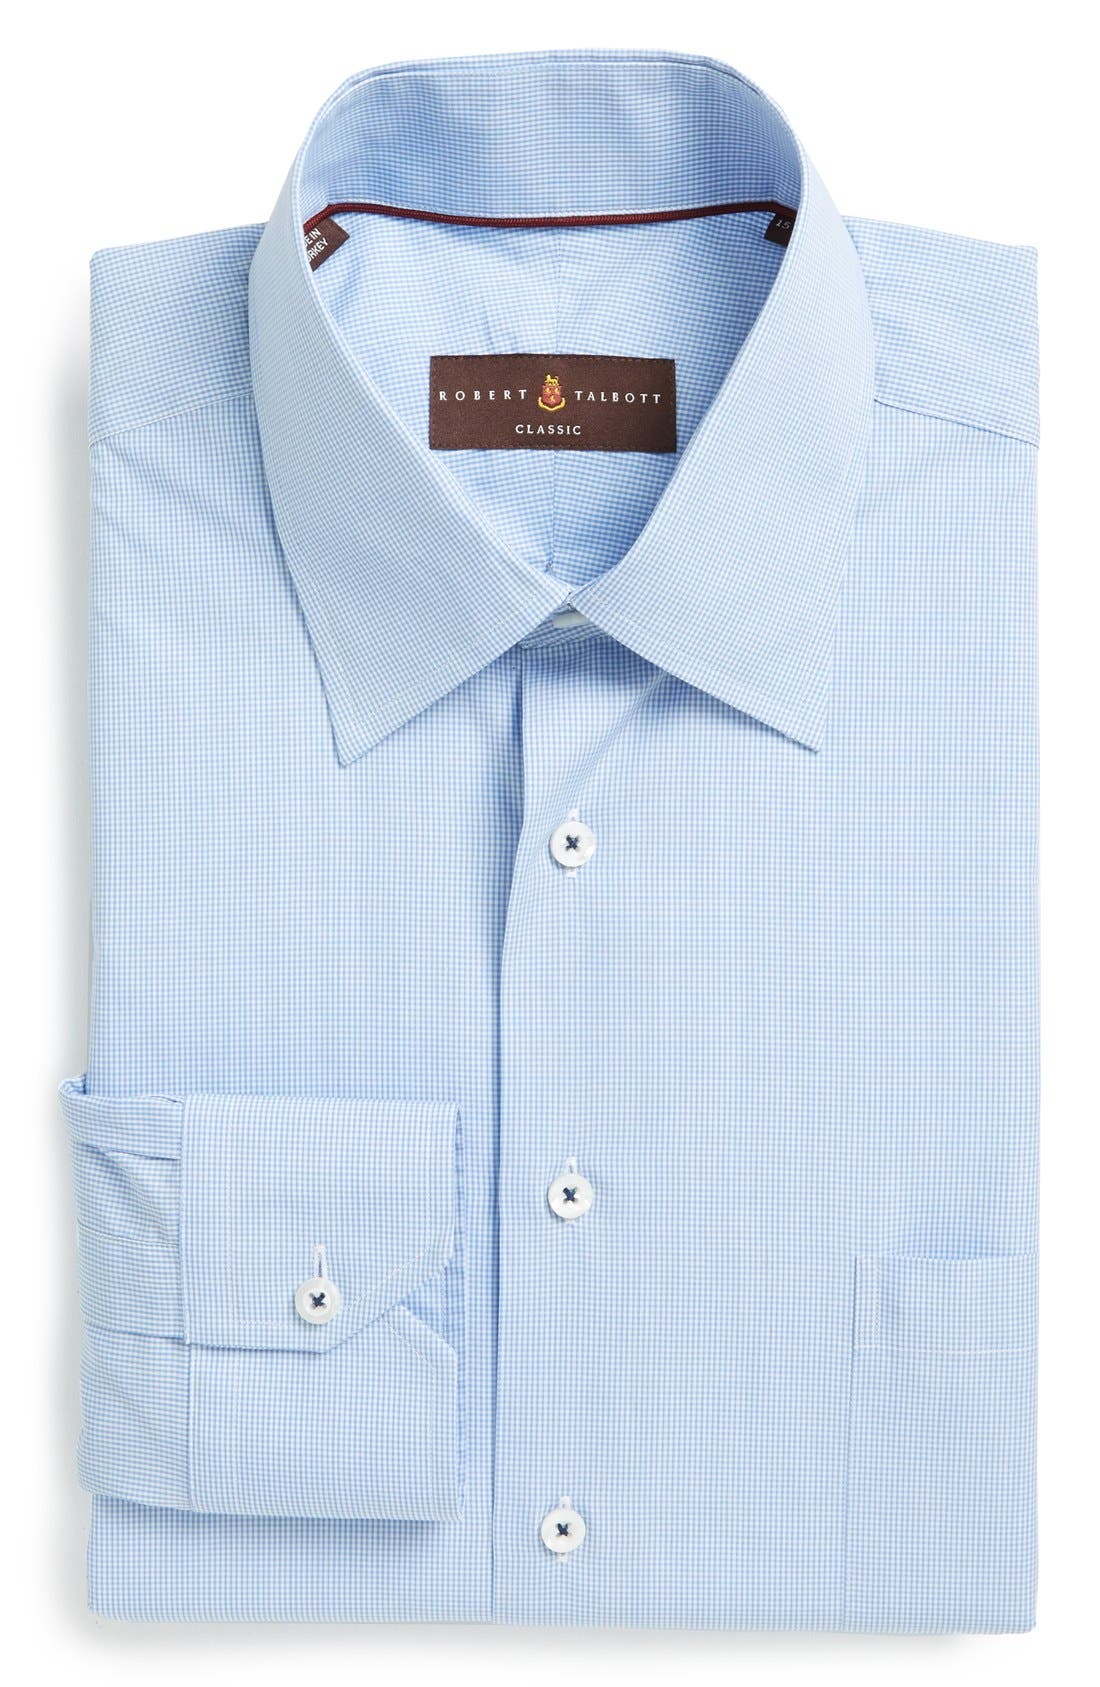 Classic Fit Micro Gingham Dress Shirt,                         Main,                         color, Blue